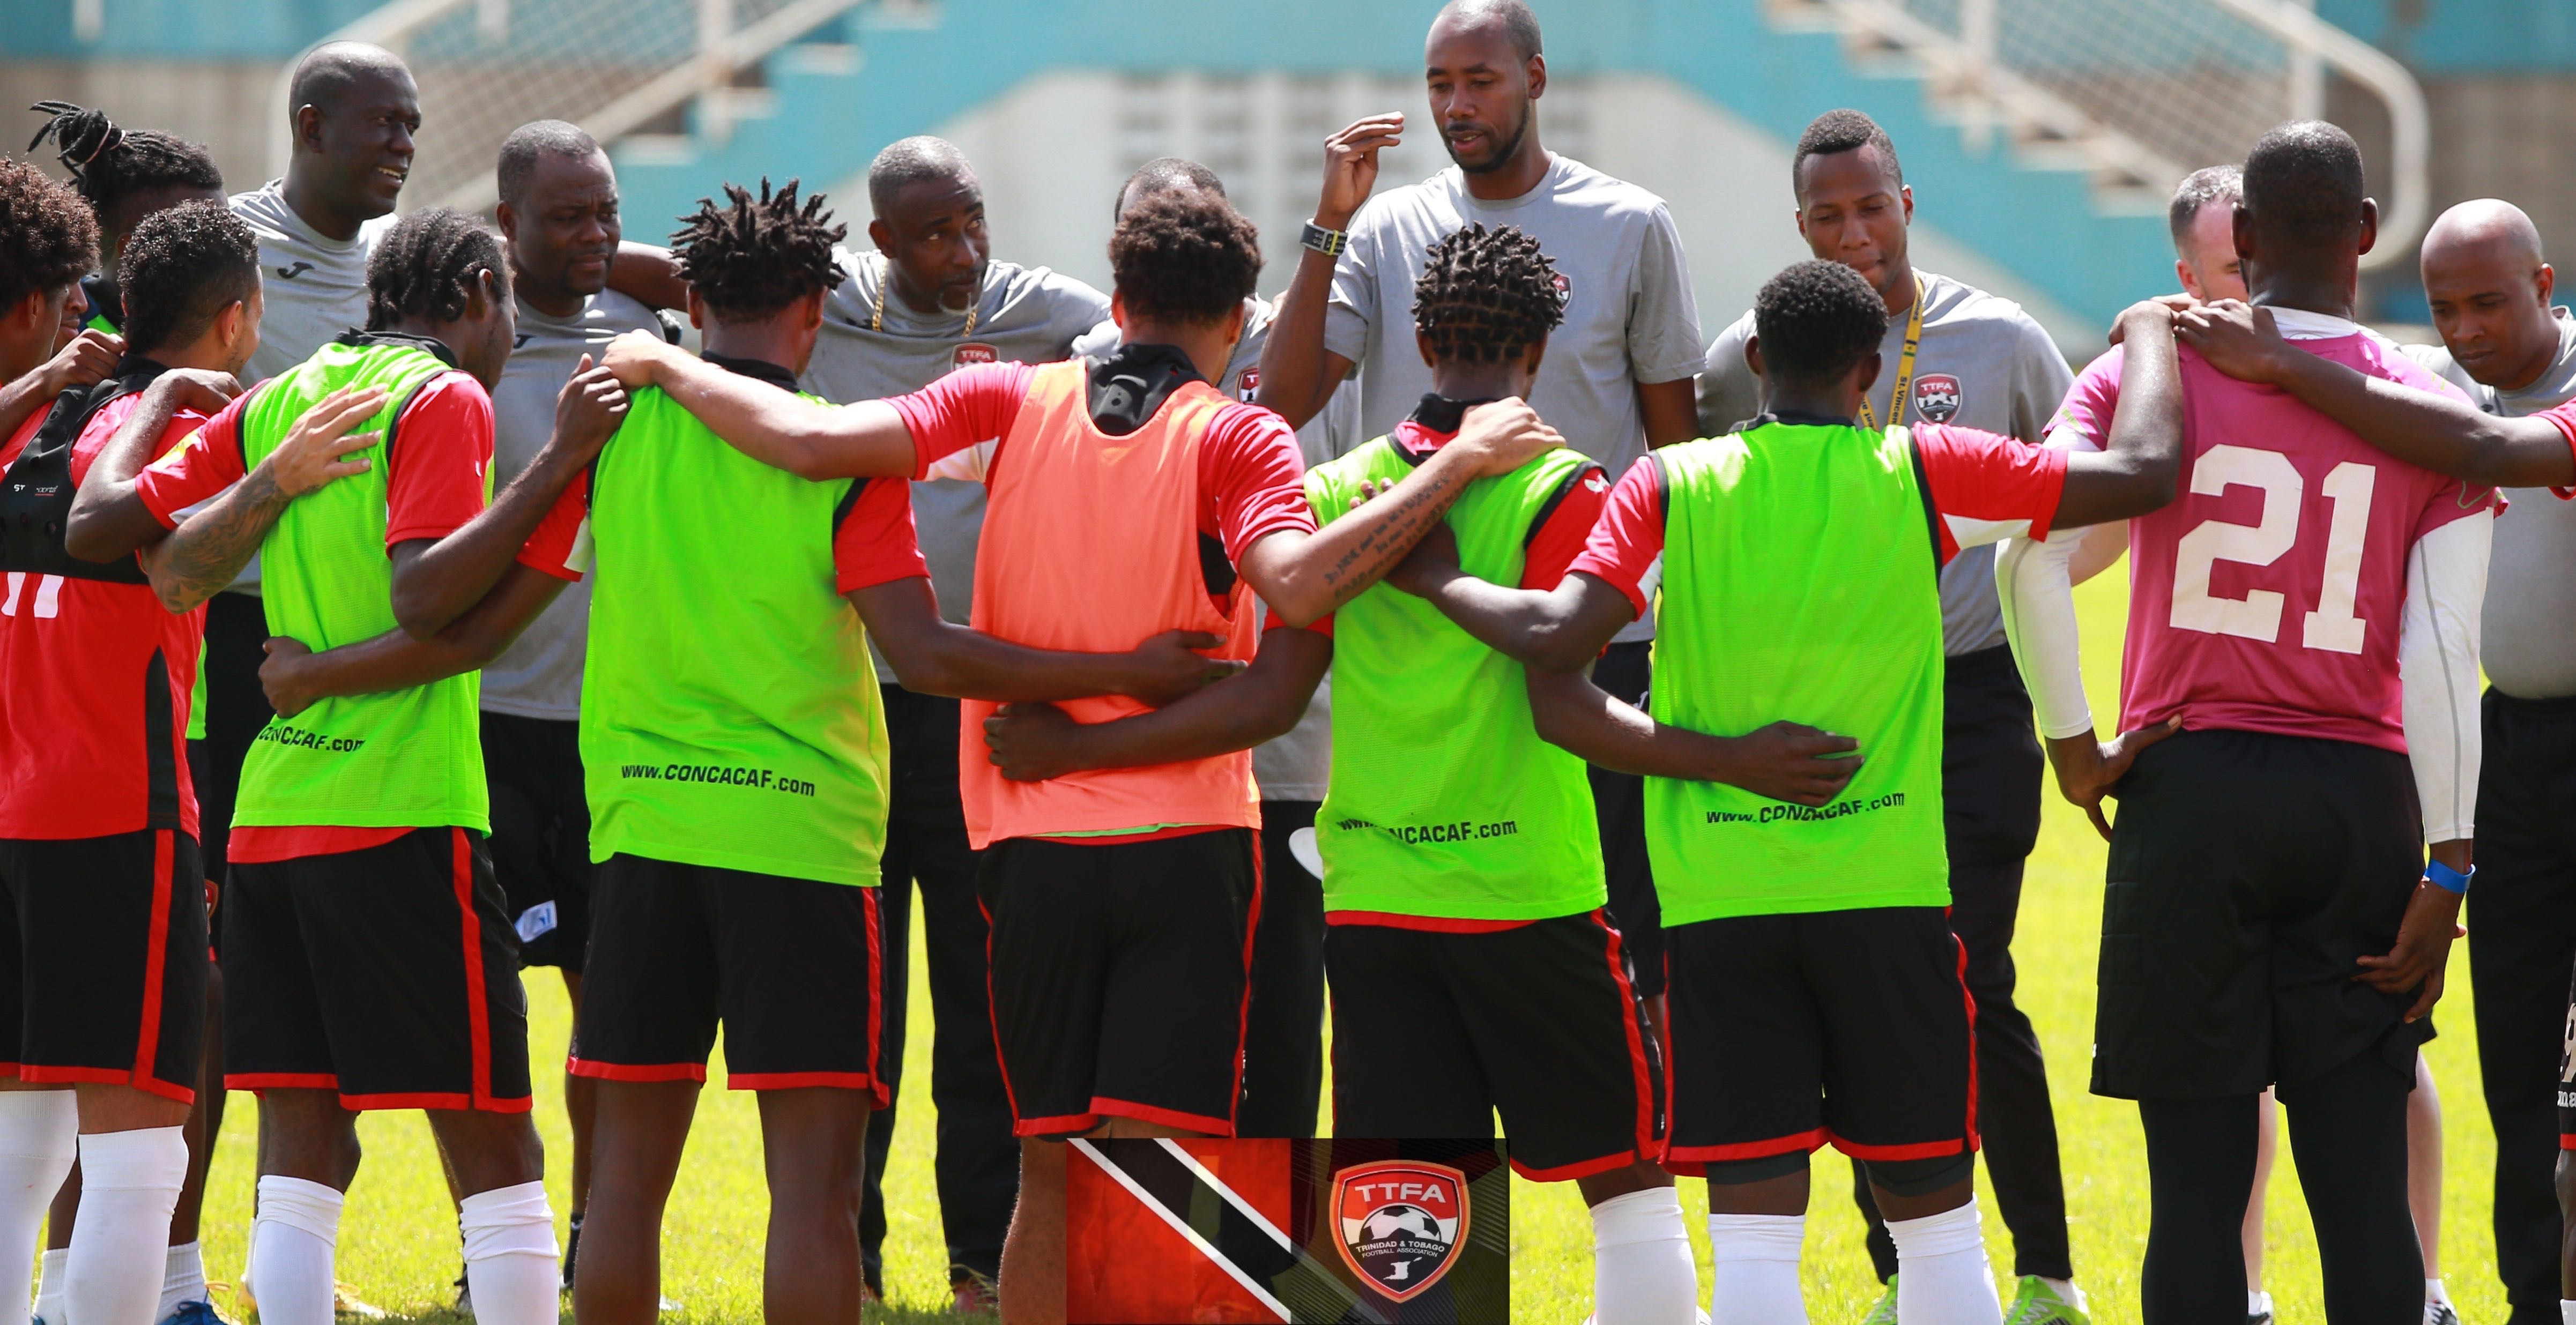 T&T vs Jamaica Rivalry resumes in Port of Spain.